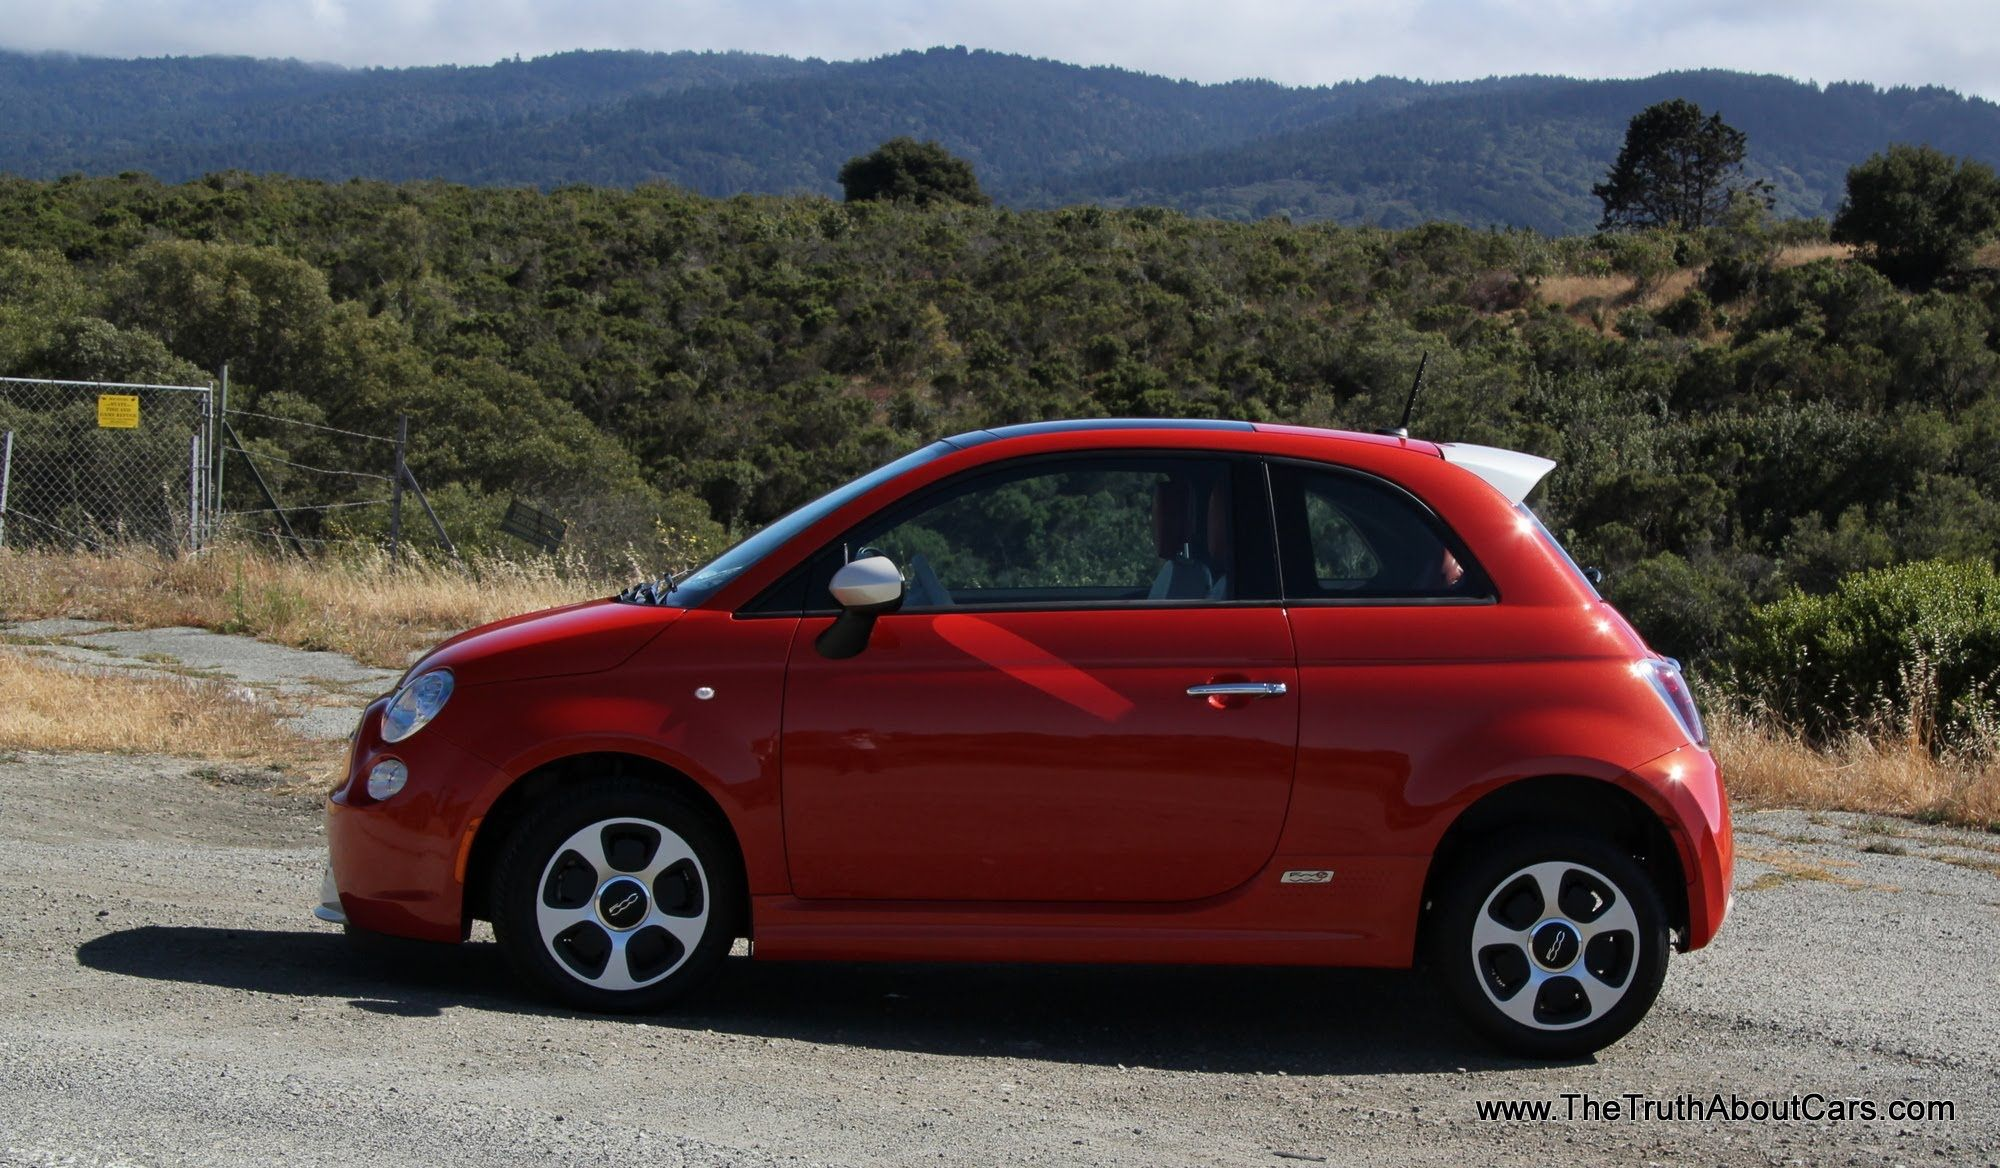 2013 Fiat 500e Electric Review and Road Test Statistics powered by